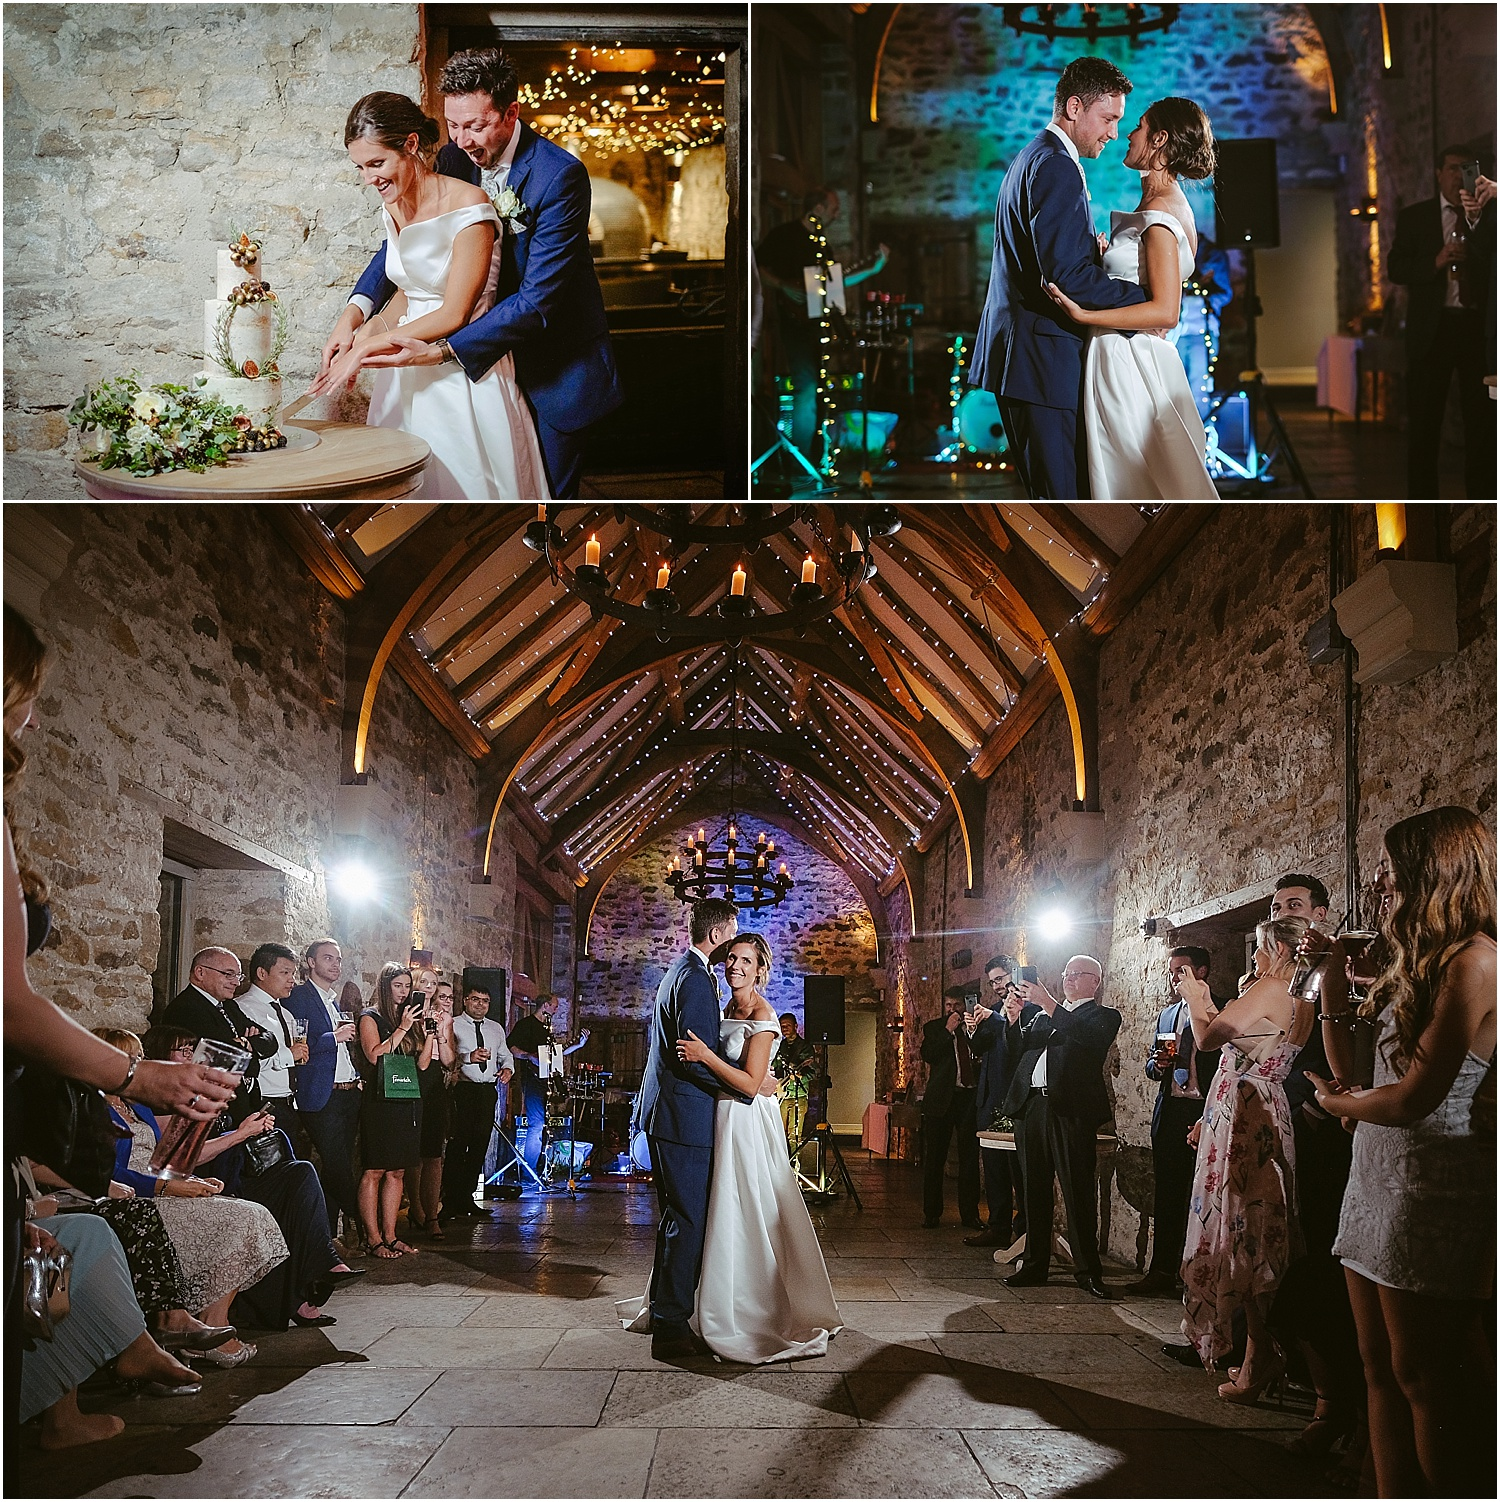 Healey Barn summer wedding photography by www.2tonephotography.co.uk 119.jpg